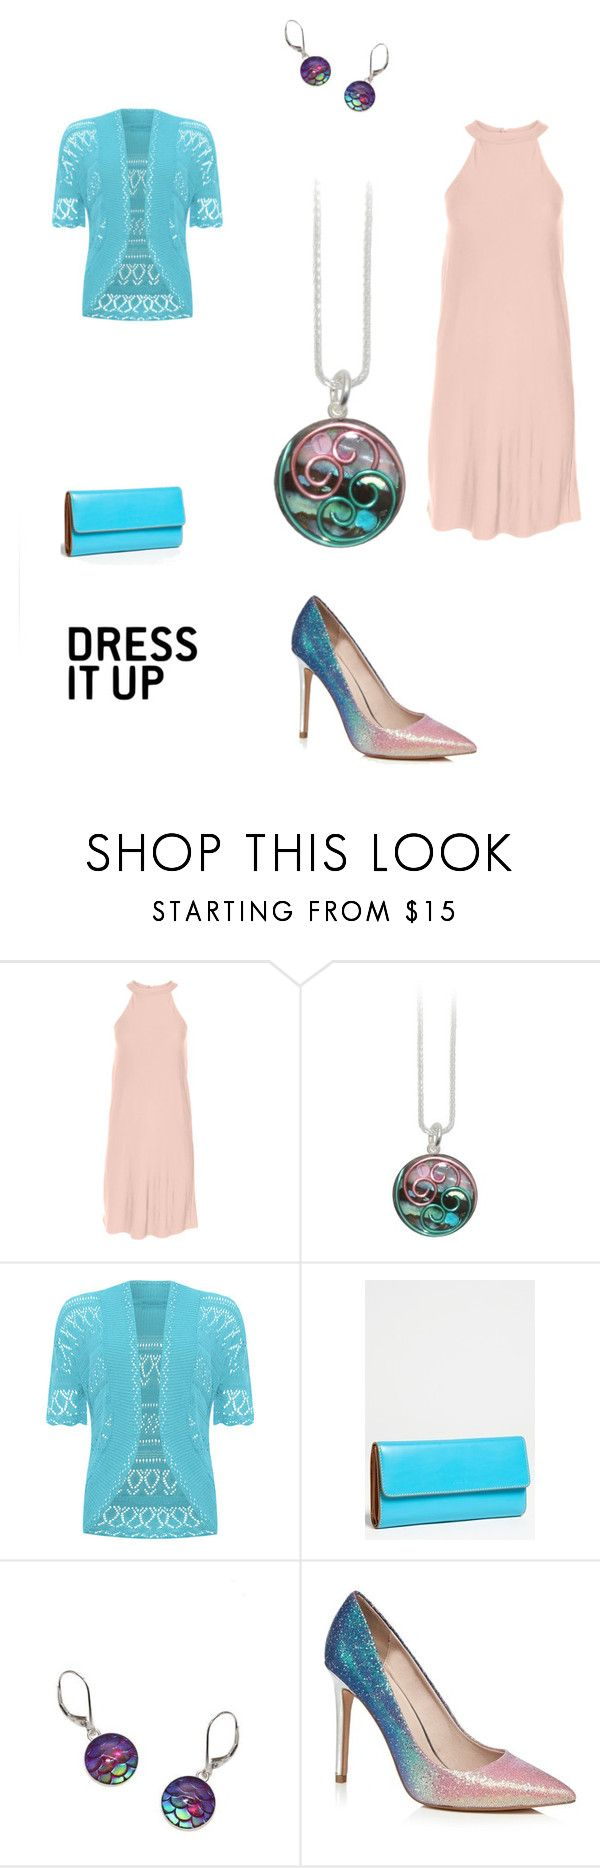 """""""Pink and Teal"""" by deb-c ❤ liked on Polyvore featuring Venus, WearAll, Lodis, Pink, jewelry, teal, avagoldworks and plus size dresses"""